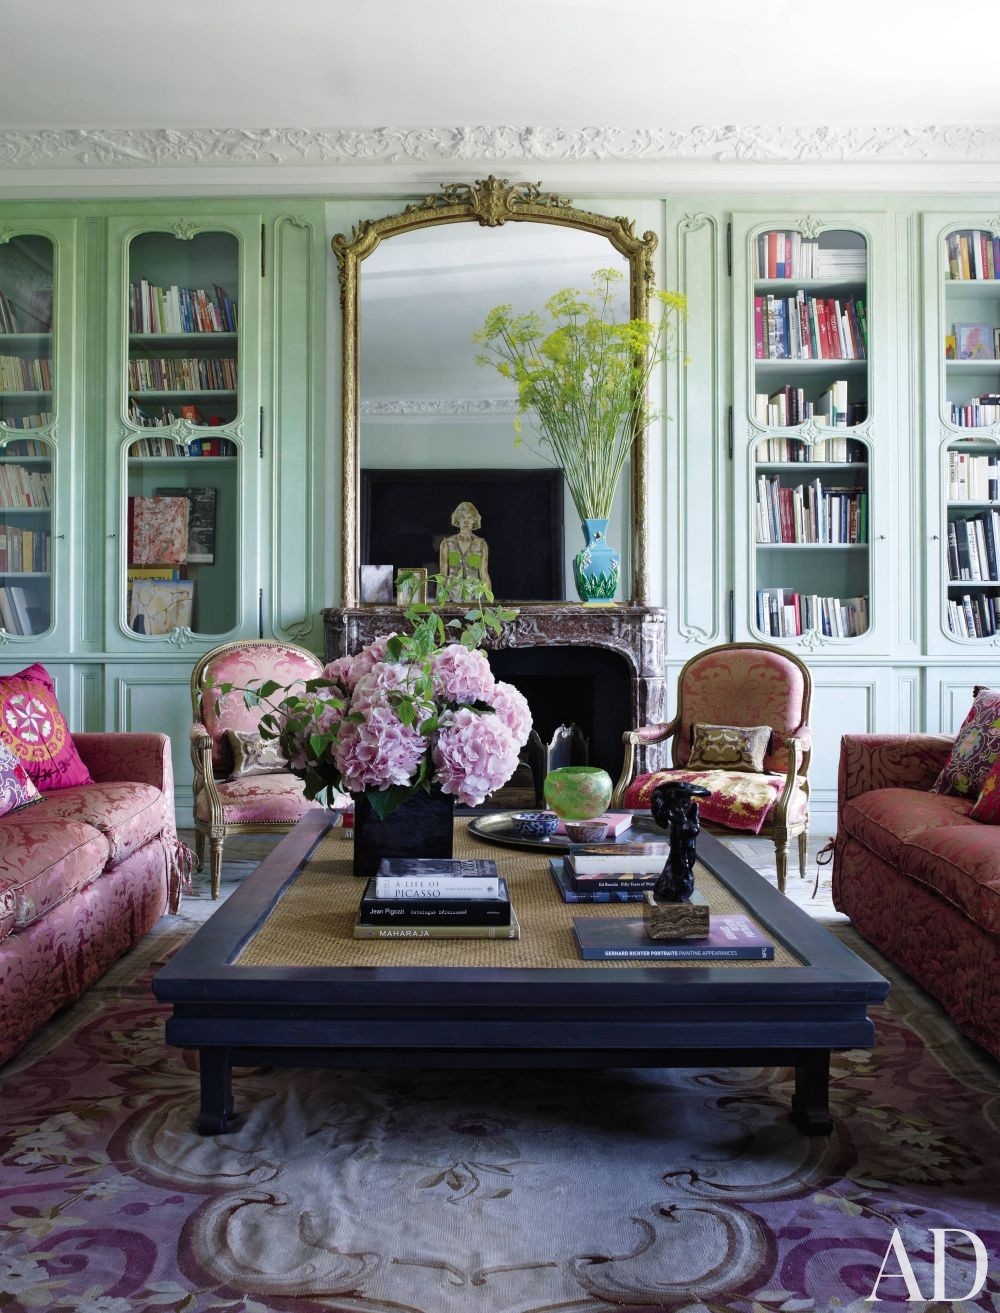 aubusson rug in traditional living room in Paris designed by Jacques Garcia